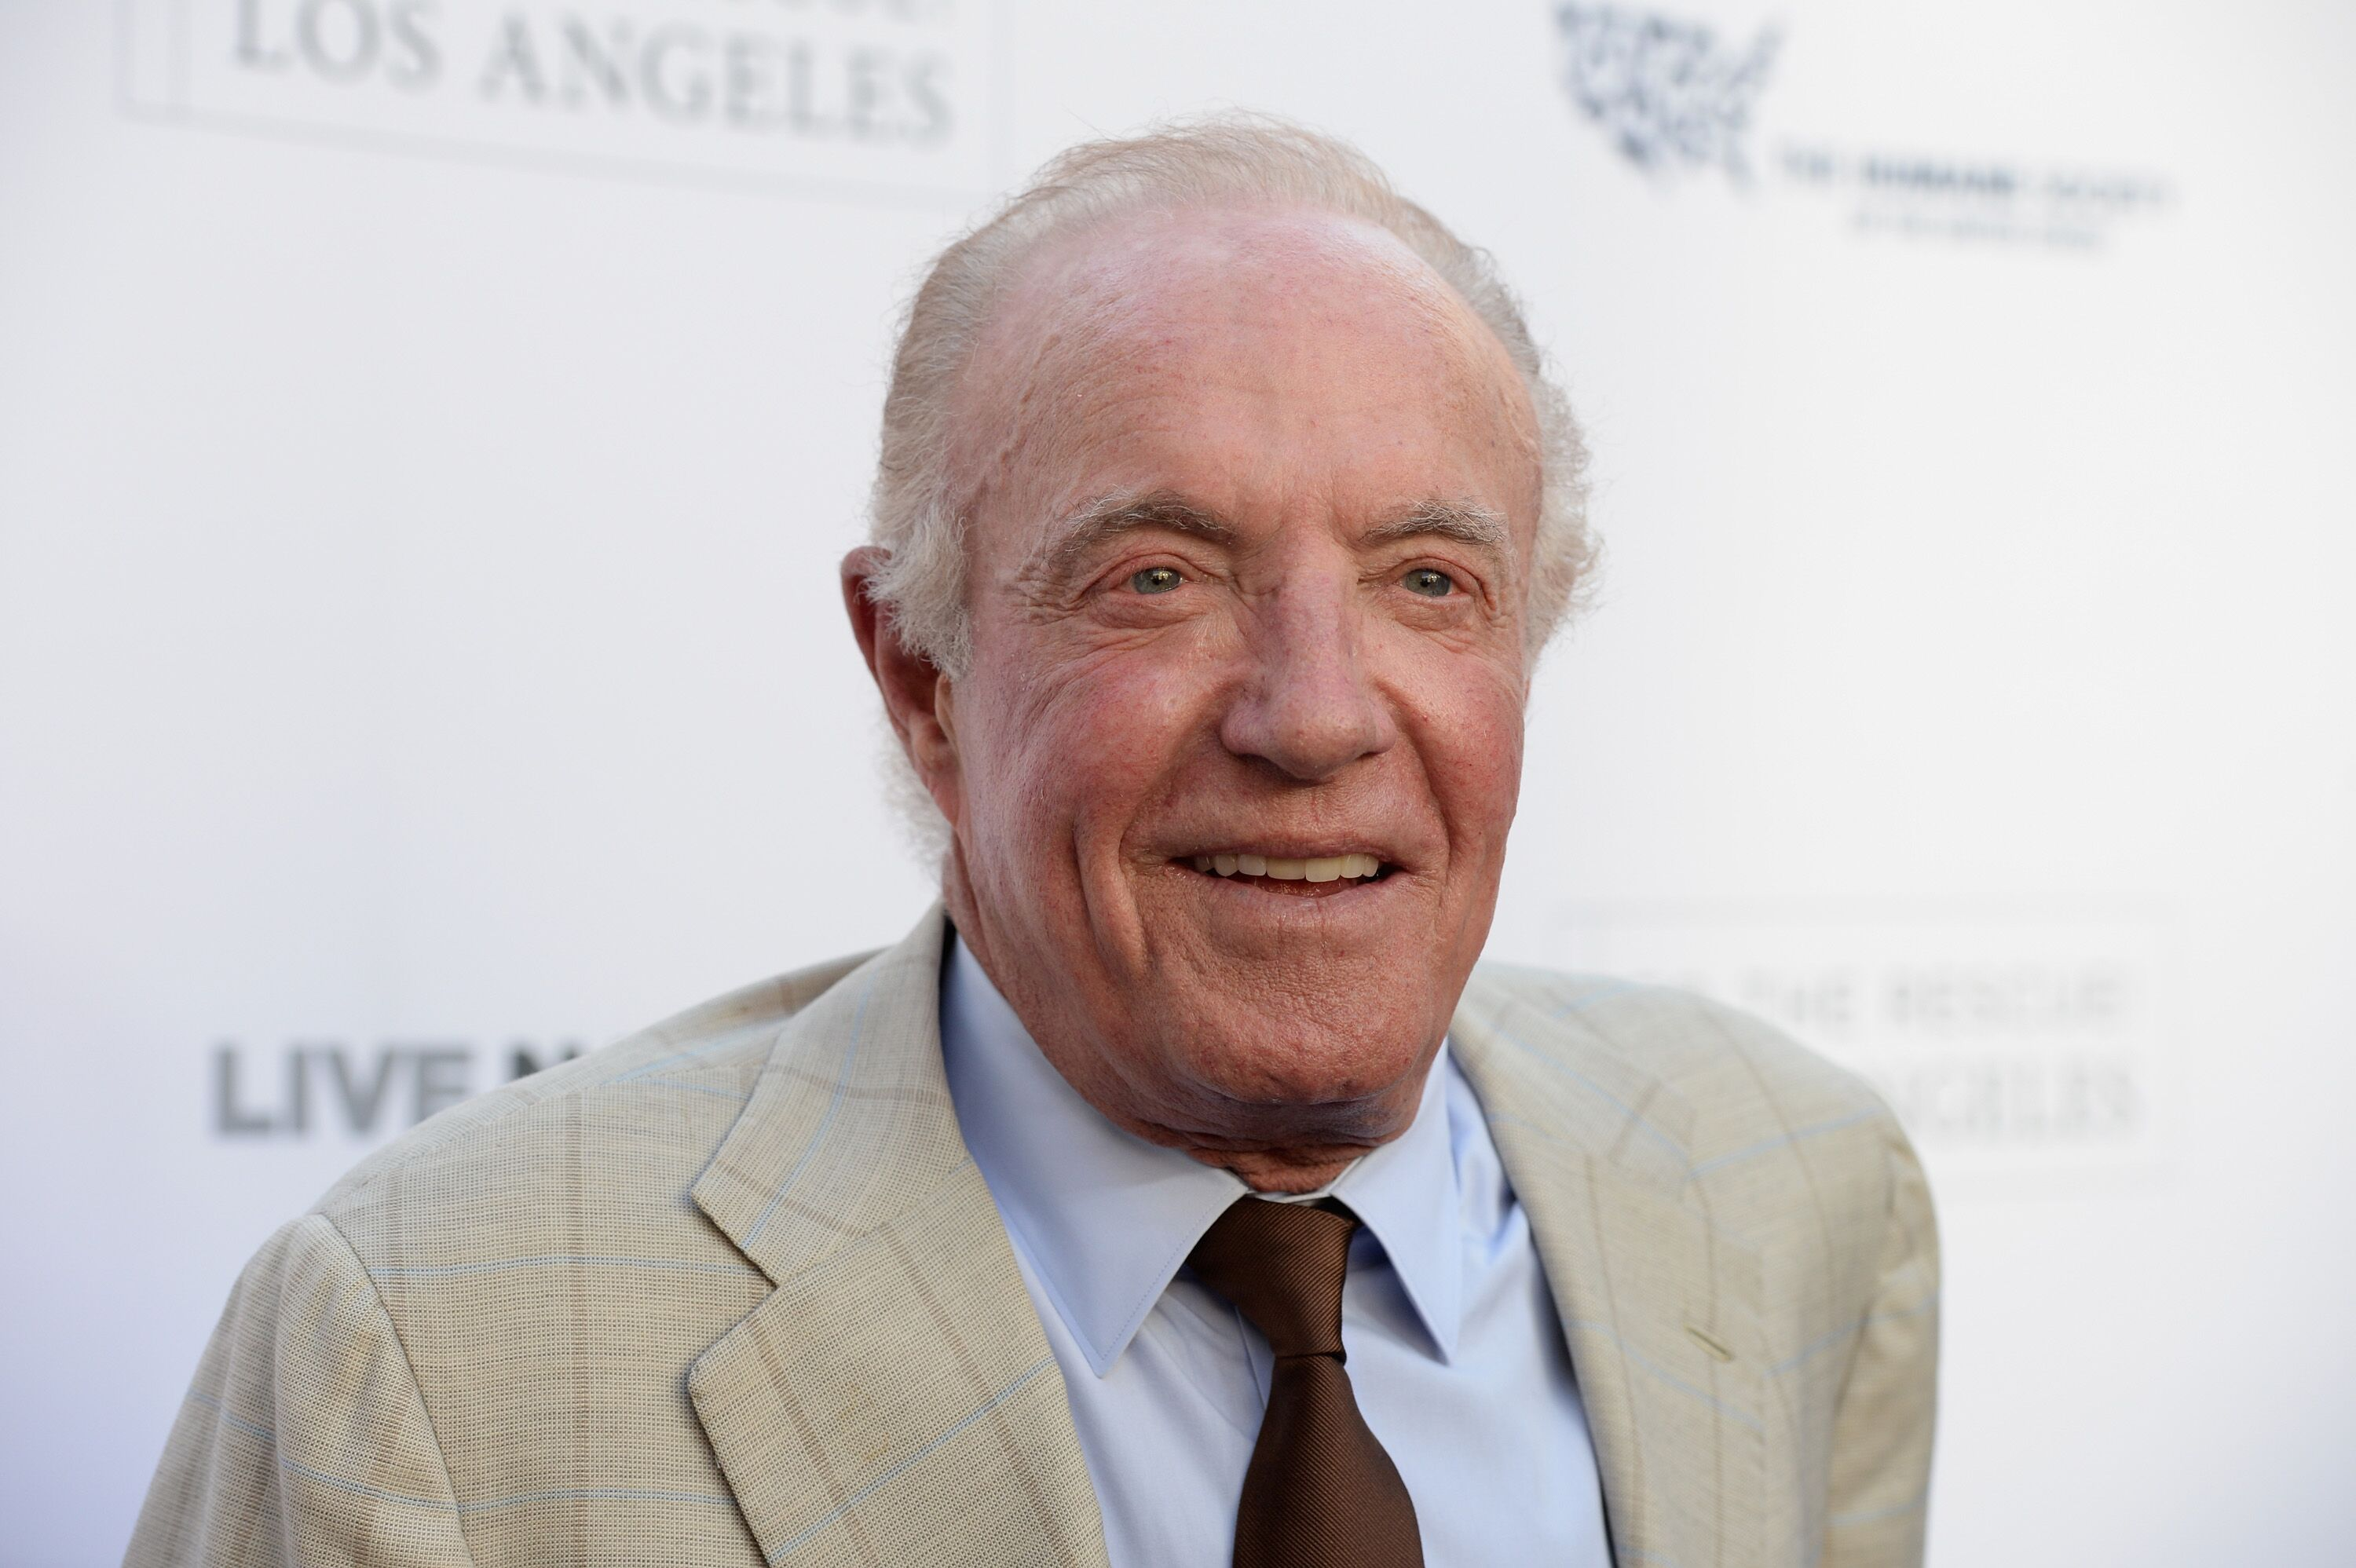 James Caan at The Humane Society of the United States' To the Rescue Los Angeles Gala at Paramount Studios on April 22, 2017 in Hollywood, California. | Source: Getty Images